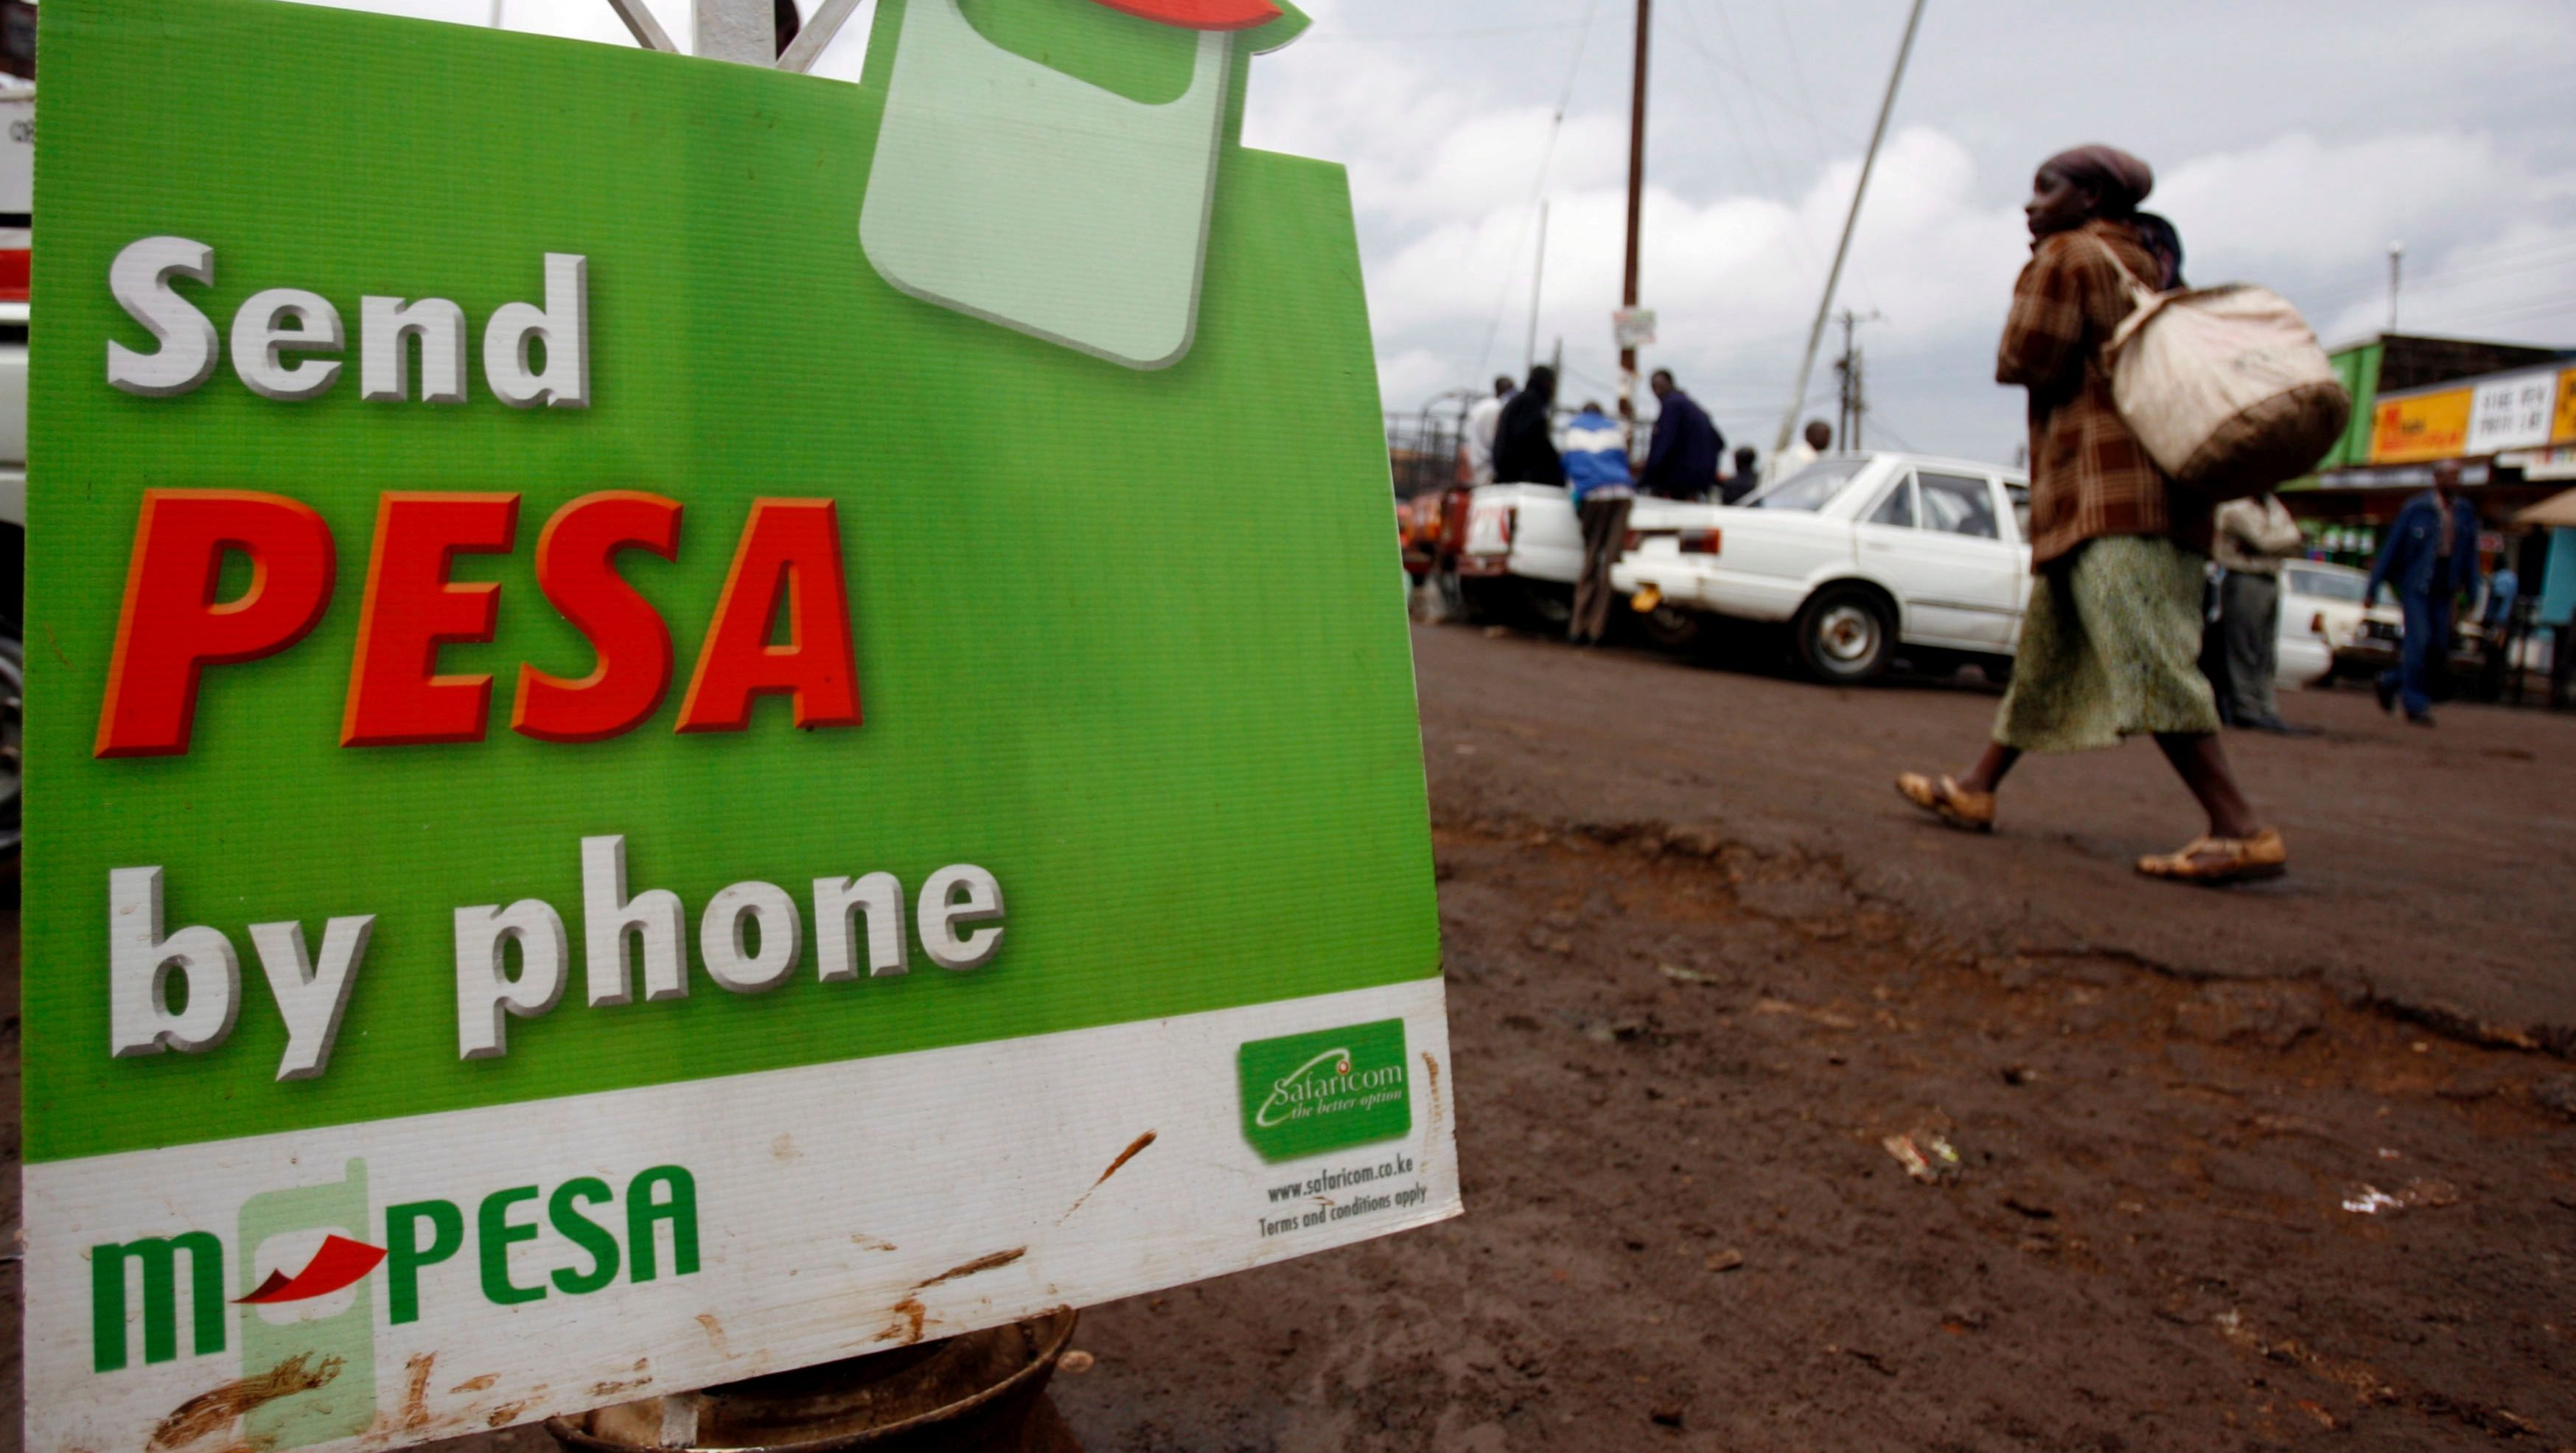 A woman walks past a sign advertising Safaricom mobile money called MPESA in the high density suburb of Kangami in Nairobi, Kenya on 26 March 2008. The Kenyan government plans to sell 25 per cent of its stake in the highly profitable mobile operator Safaricom by holding east Africa's largest ever IPO which is scheduled to begin selling shares on 28 December 2008.